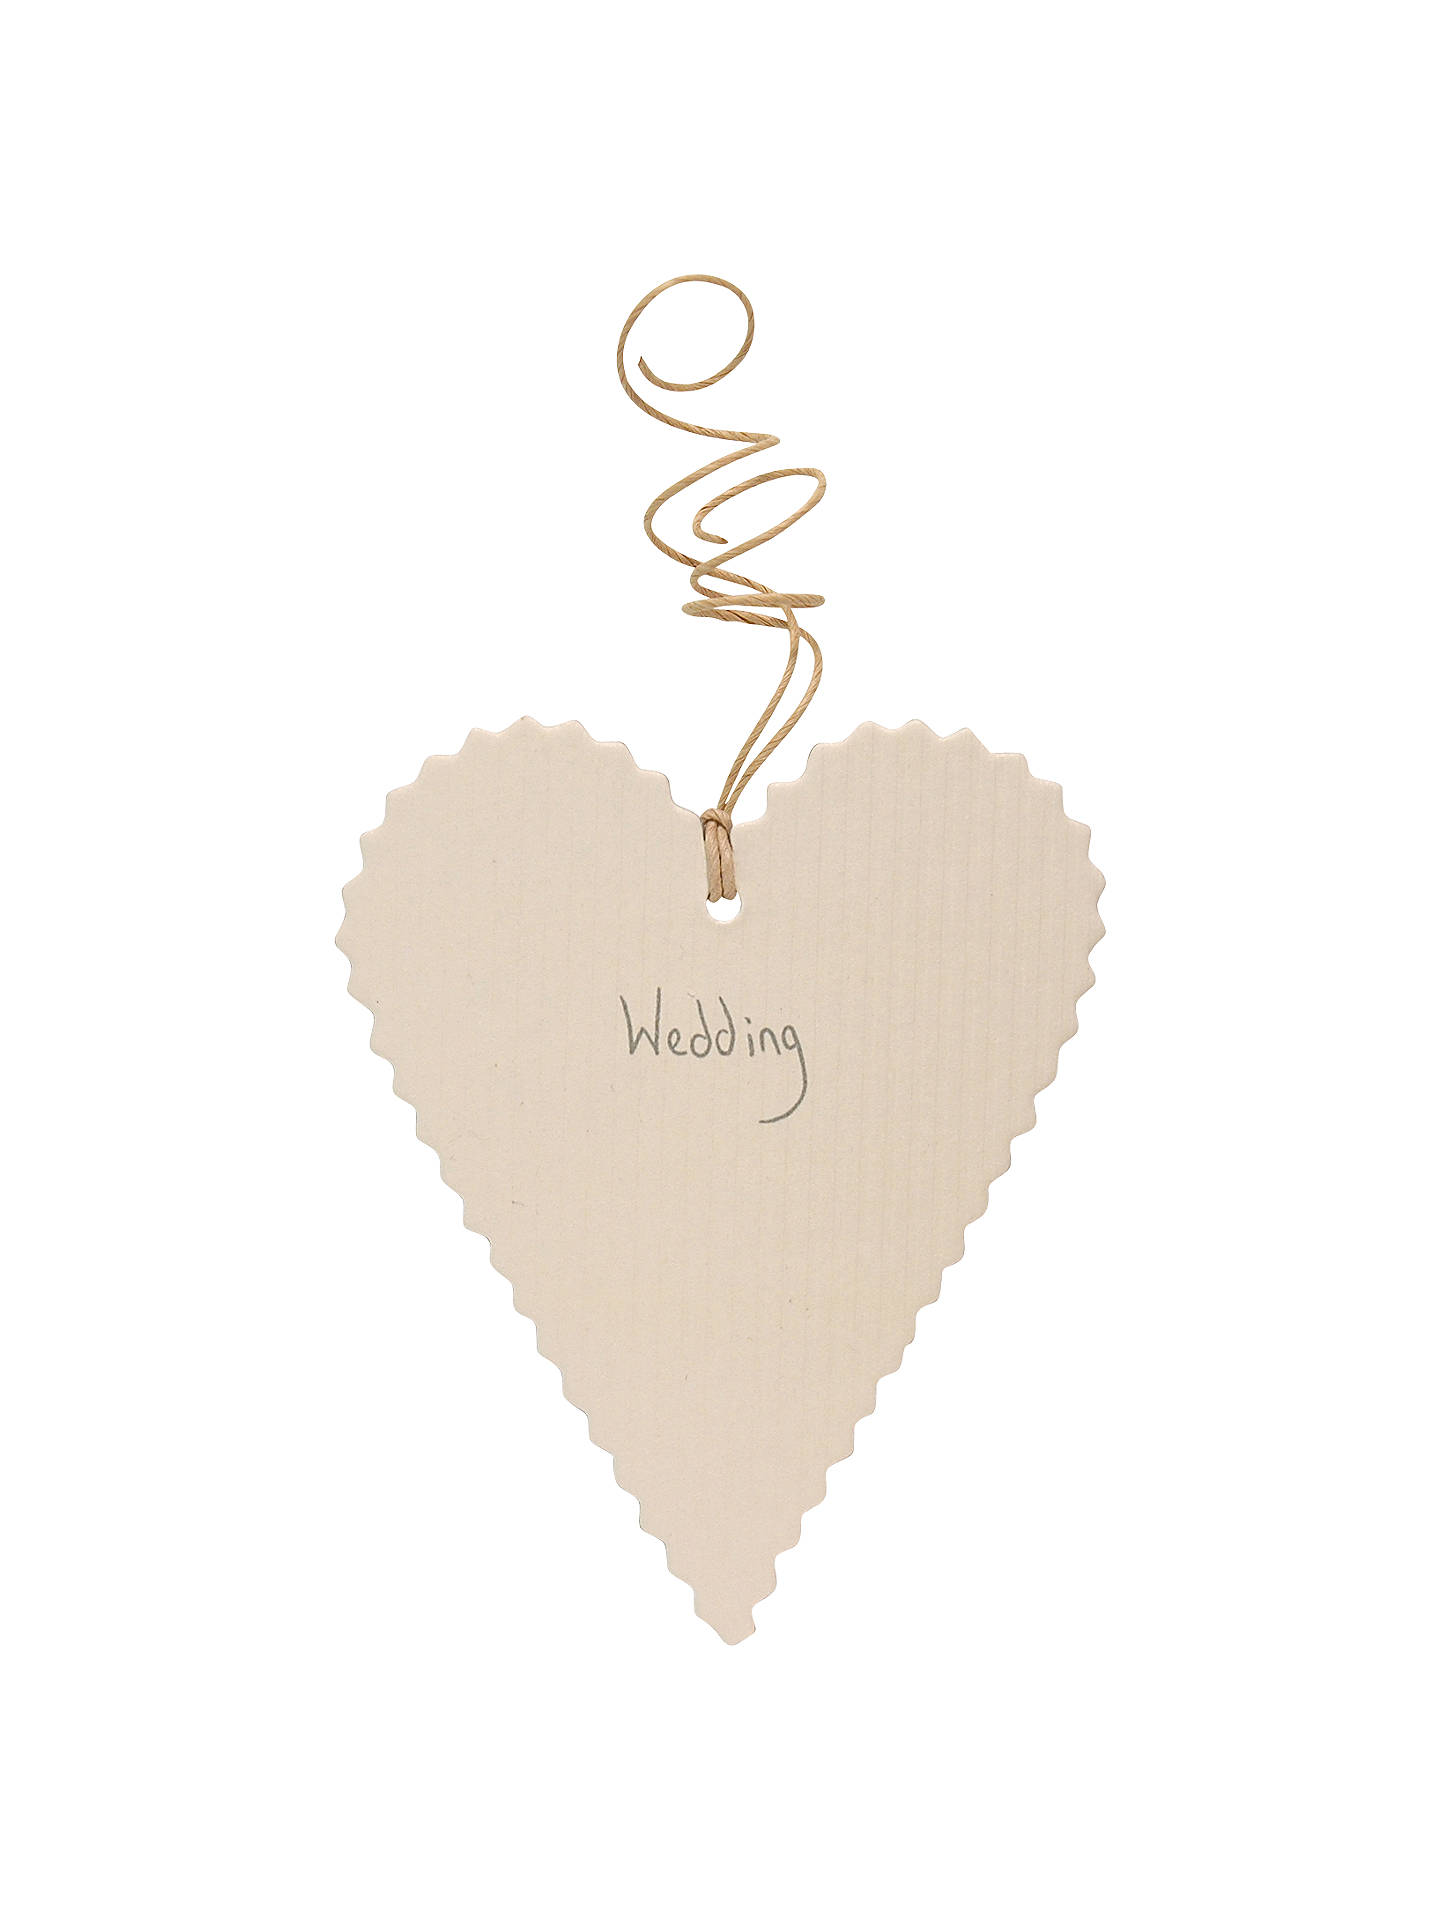 East Of India Heart Wedding Gift Tag At John Lewis Partners